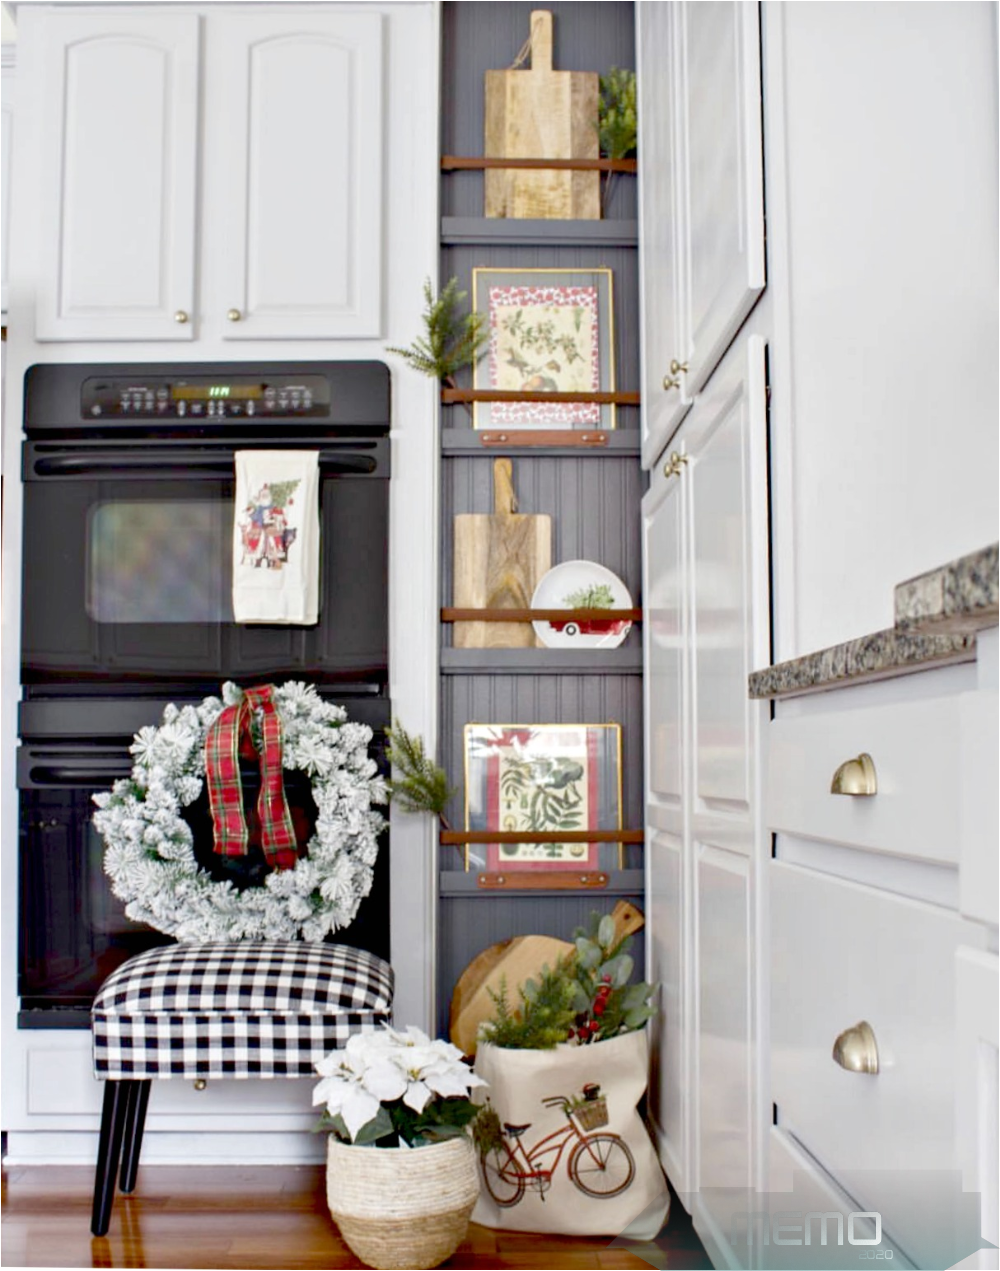 Don T Let Your Small Space Kitchen Go Pantry Less Try These Easy Diys Instead Built In Pantry Pantry Cabinet Kitchen Pantry Cabinets